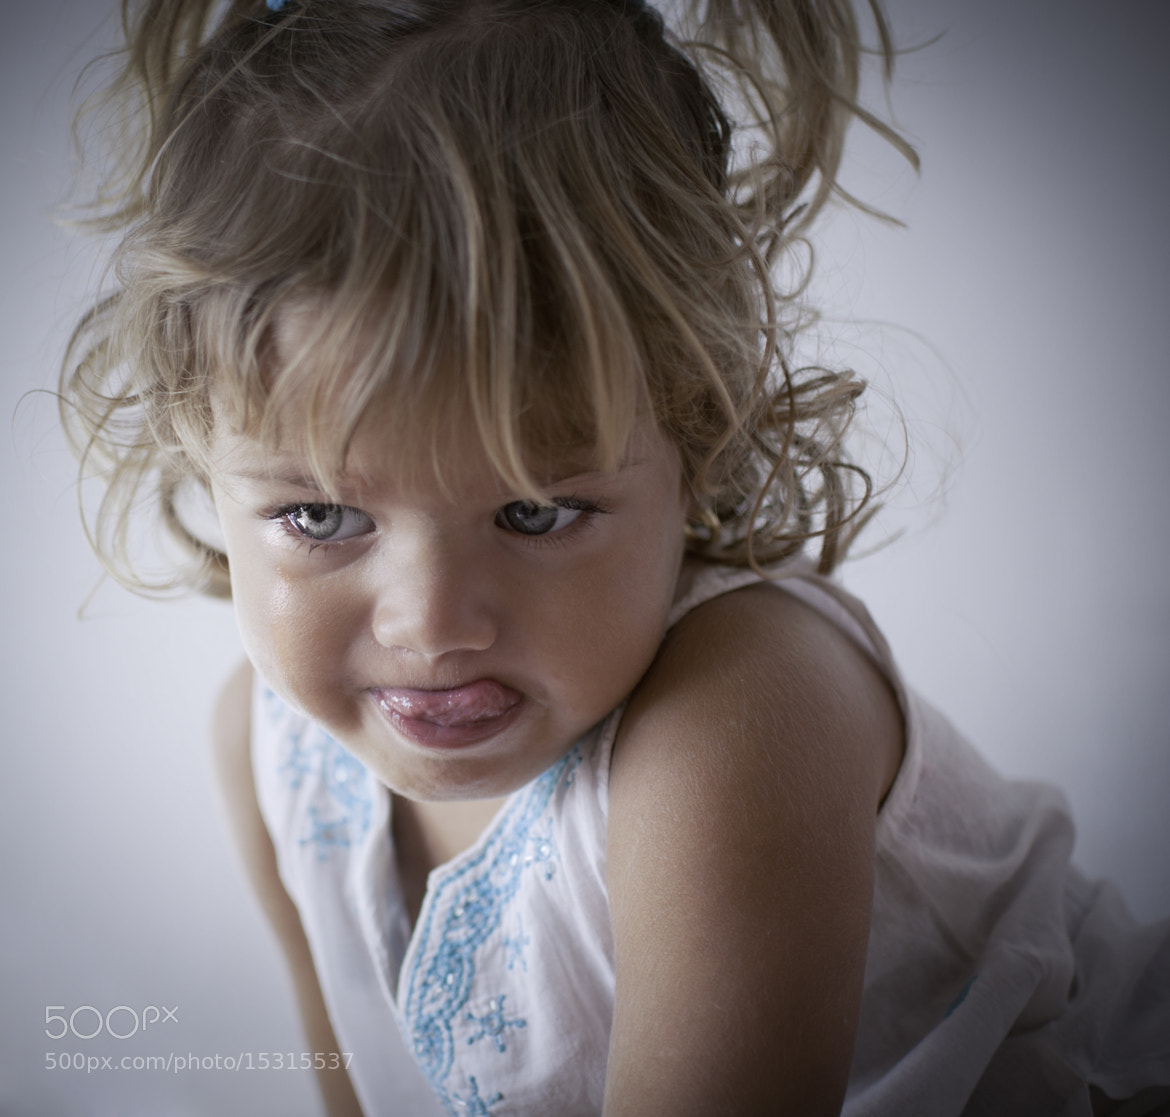 Photograph cry by Susana de la Llave on 500px